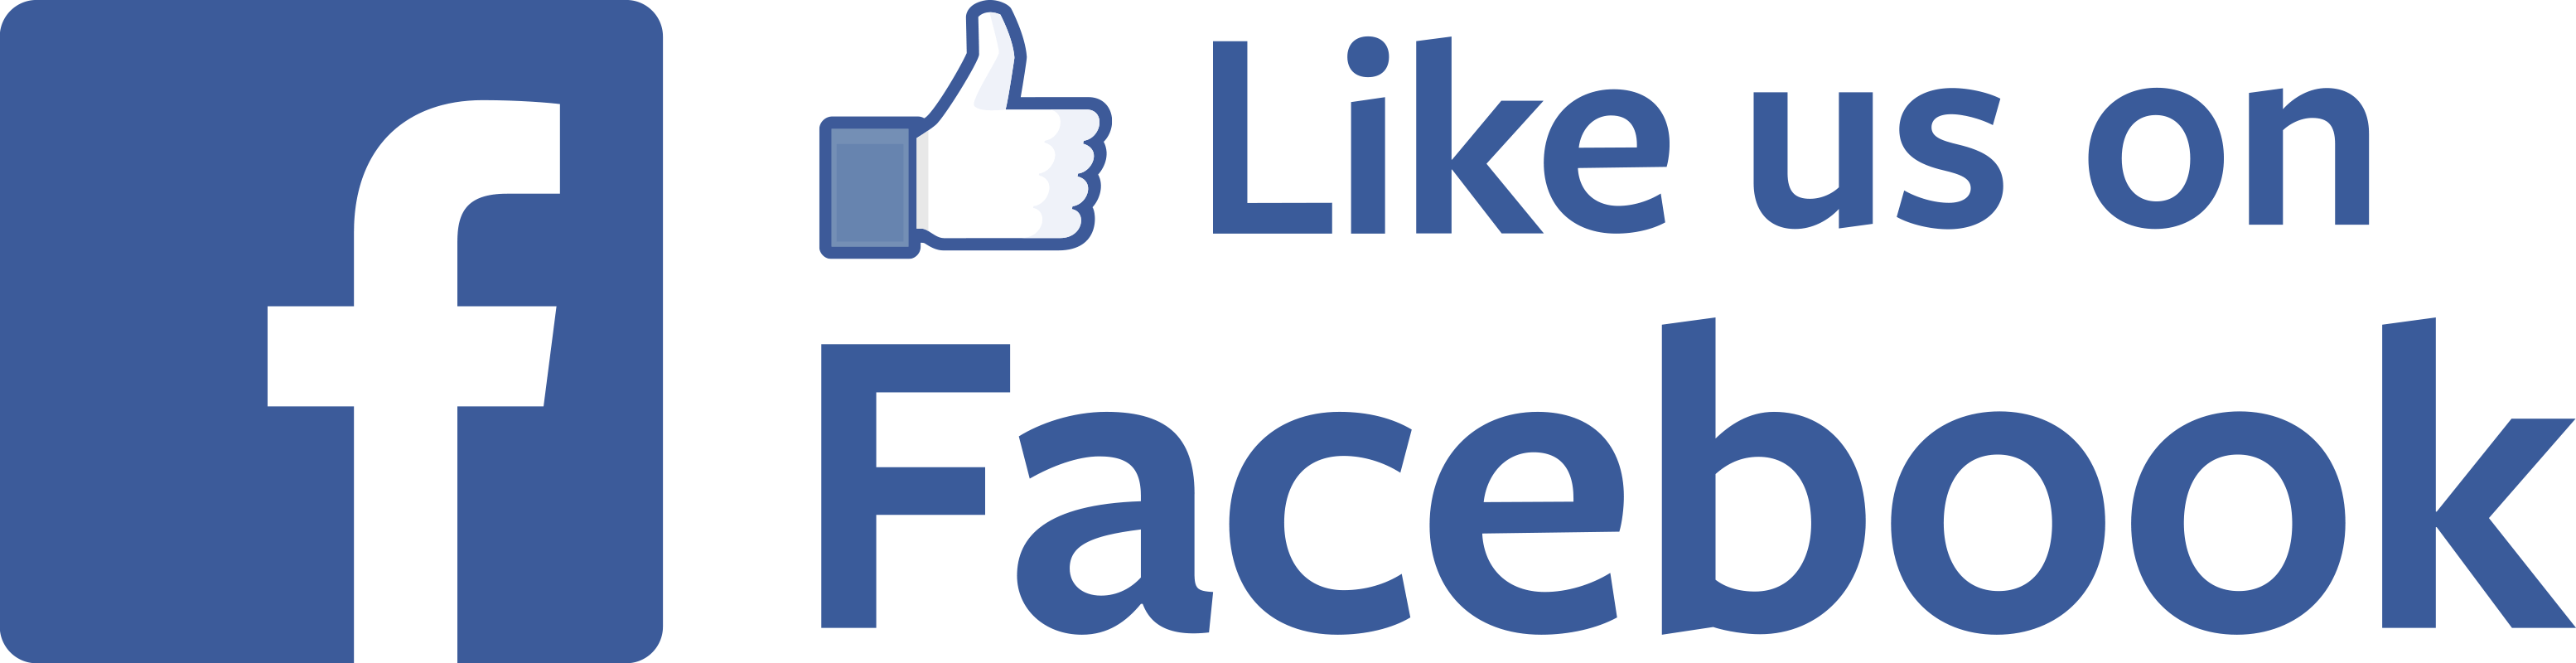 Like us on facebook png. With thumb up transparent